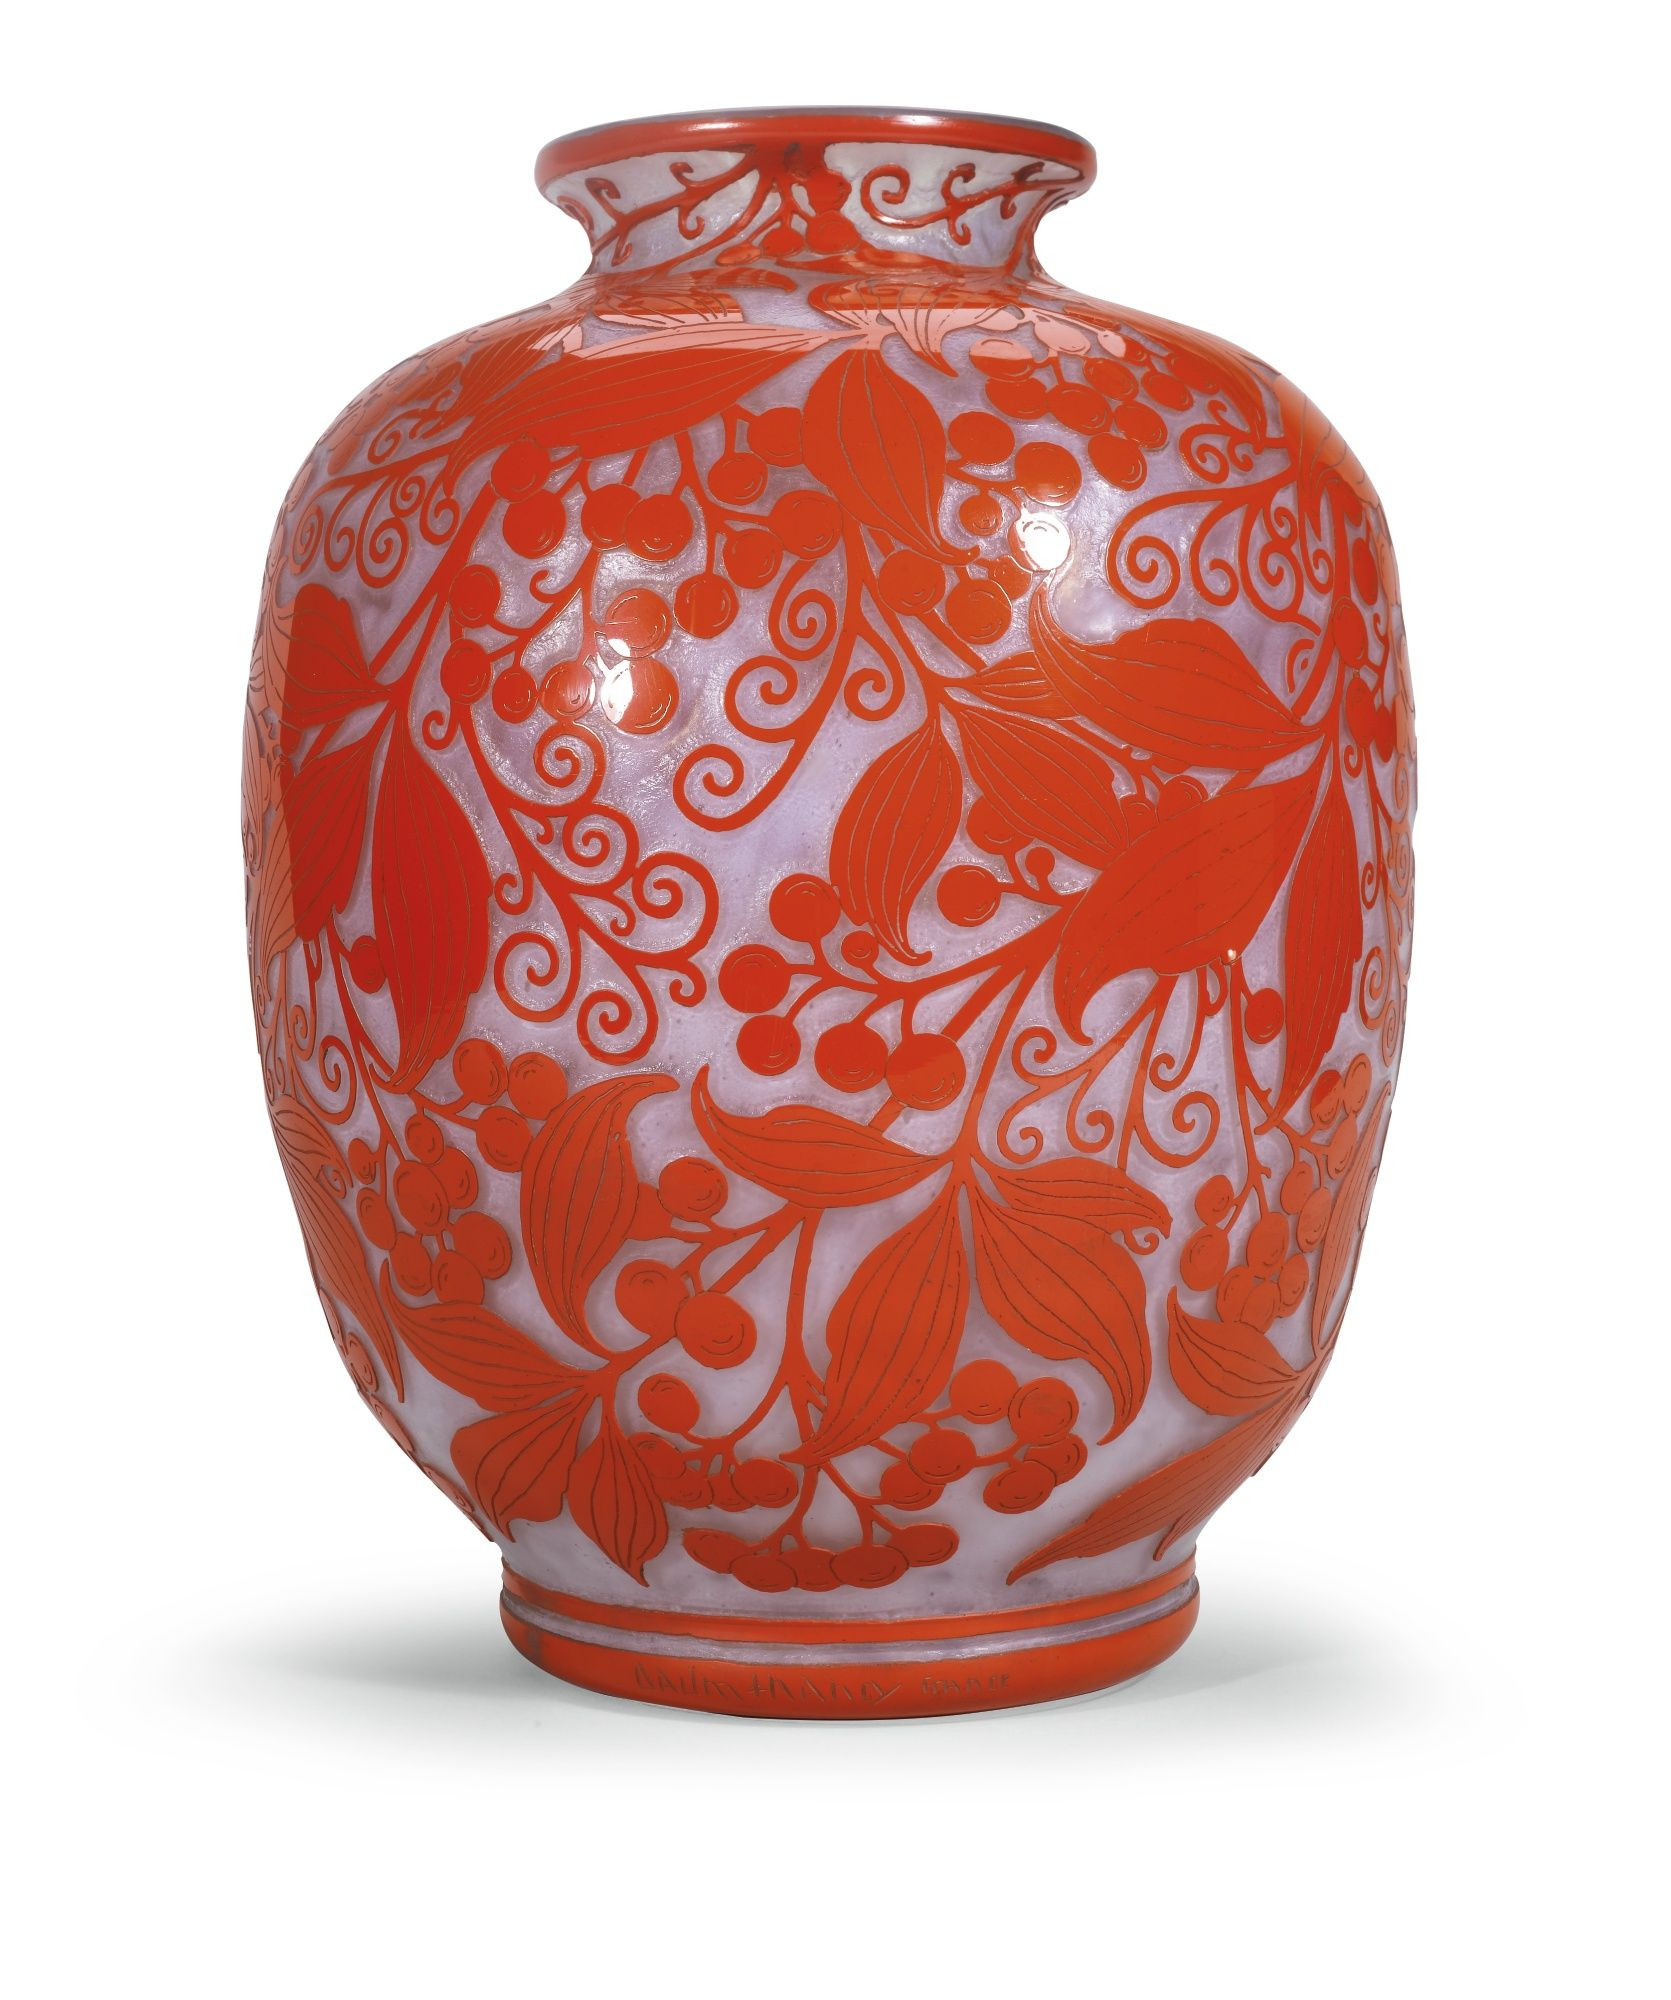 daum nancy vase prices of a white and red glass vase overlaid with leaves and berries by daum inside a white and red glass vase overlaid with leaves and berries by daum